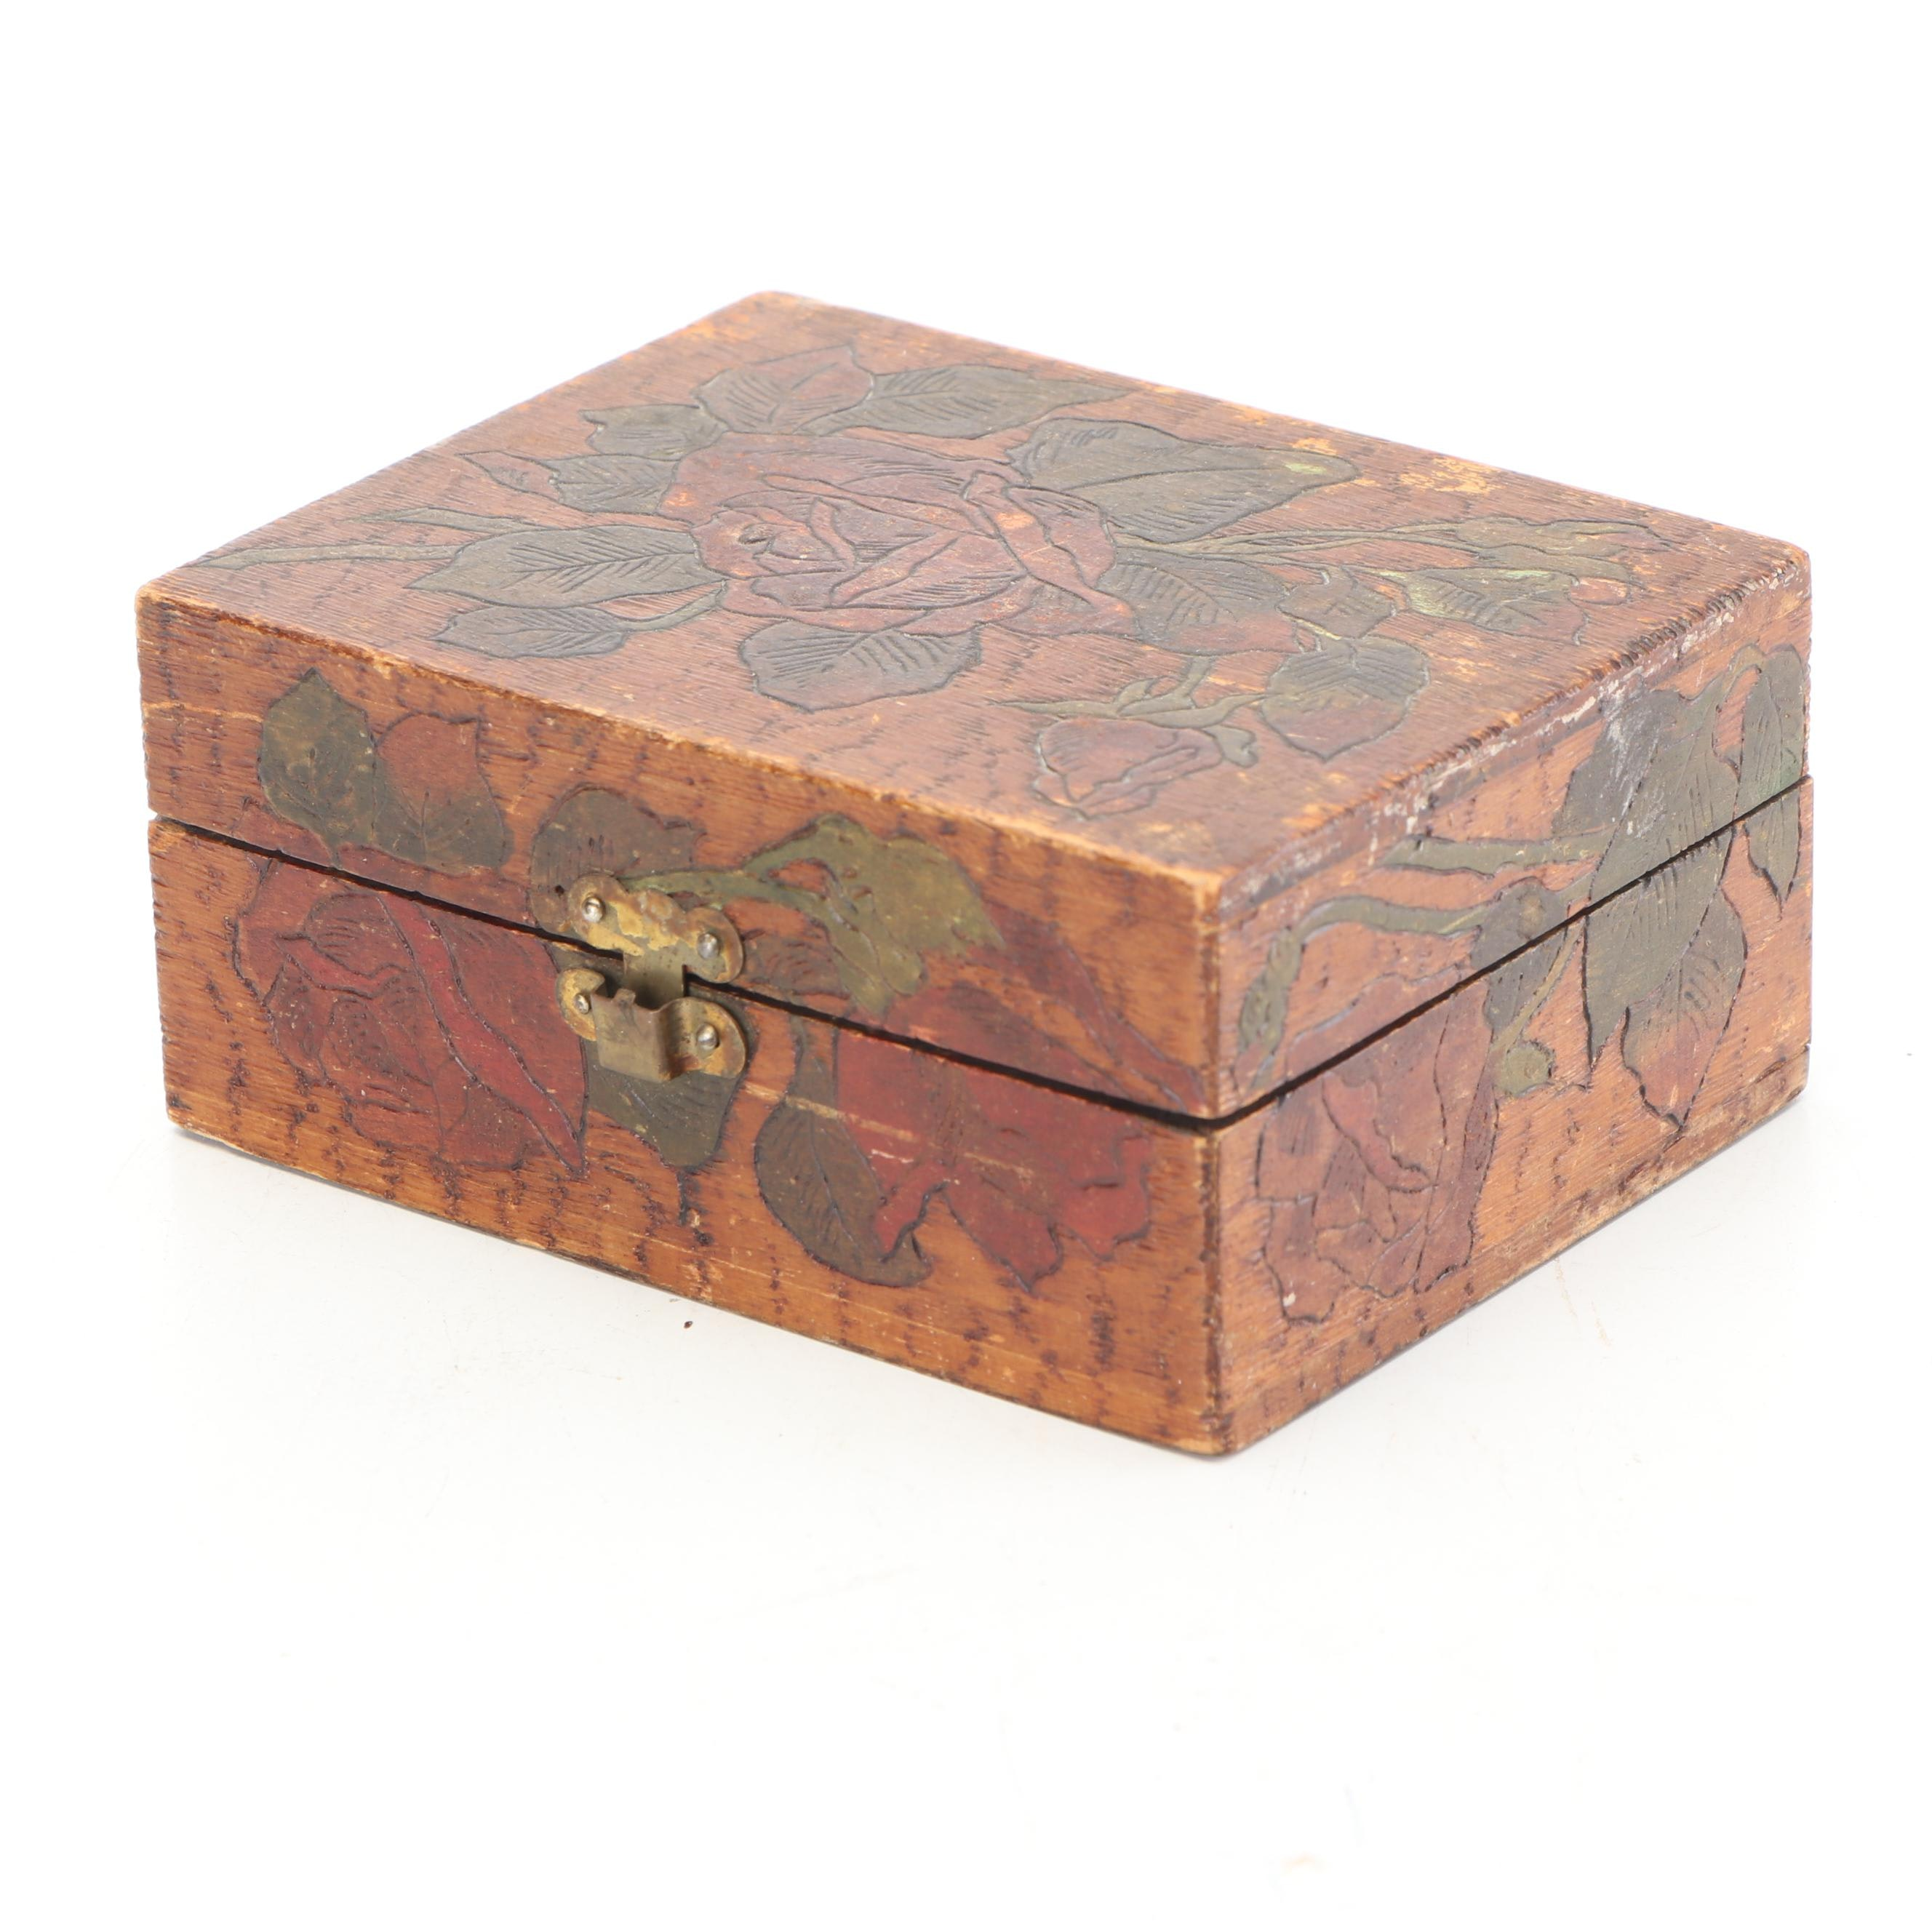 Polychrome Folk Art Wood Storage Box, Early 20th Century